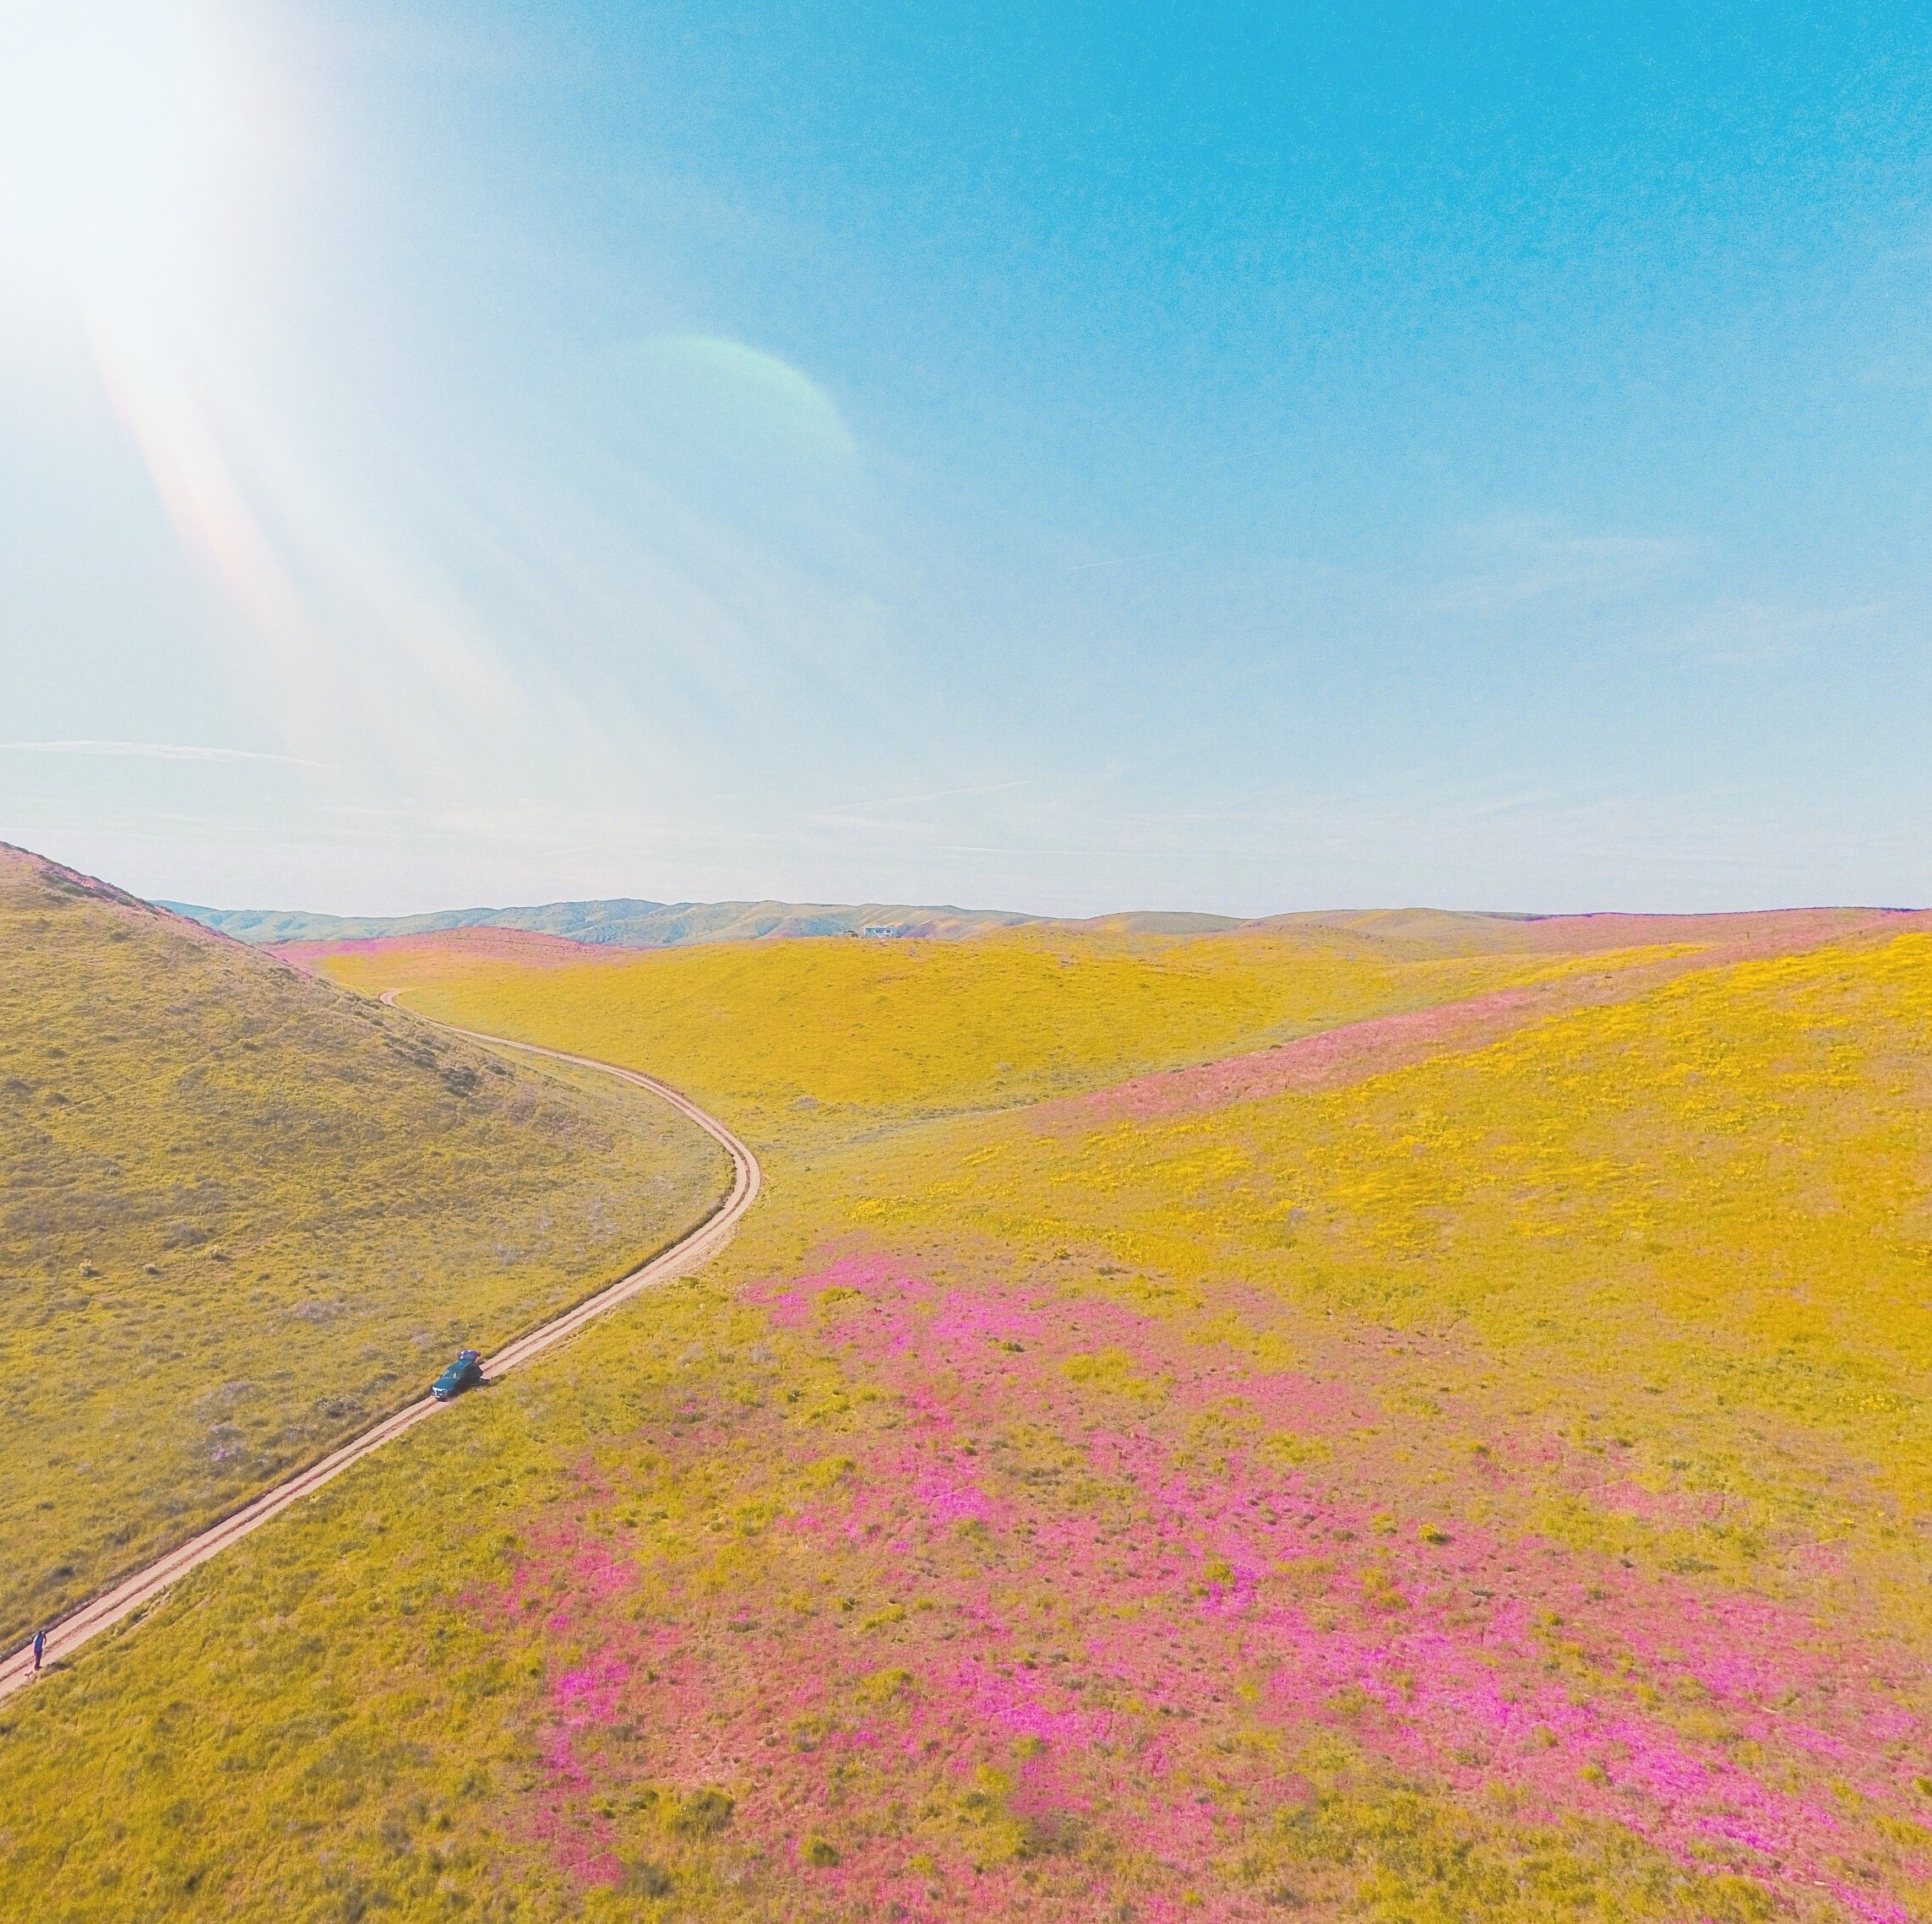 yellow and pink flowers, Carrizo Plain National Monument